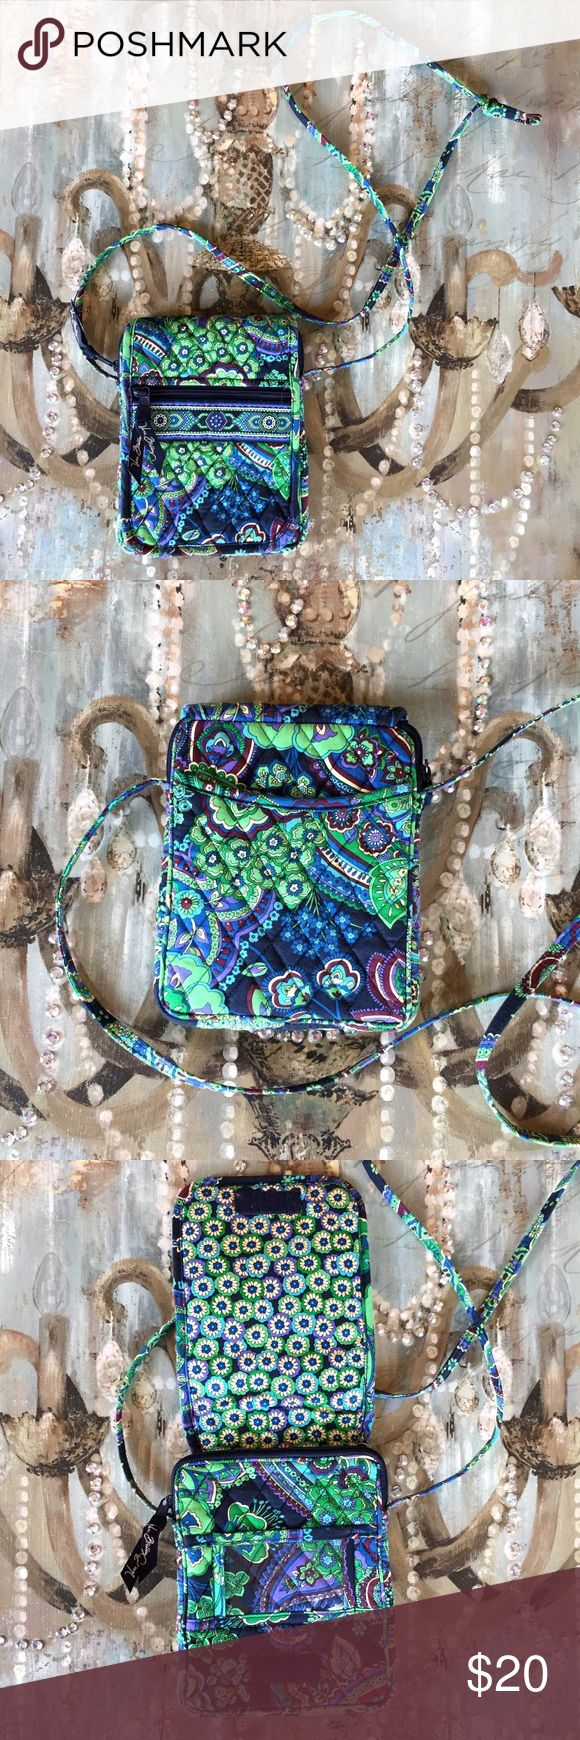 Vera Bradley Purse This Vera Bradley purse has many compartments on it and inside of it! It has NEVER been used and is in PRISTINE condition! :) Vera Bradley Bags Crossbody Bags